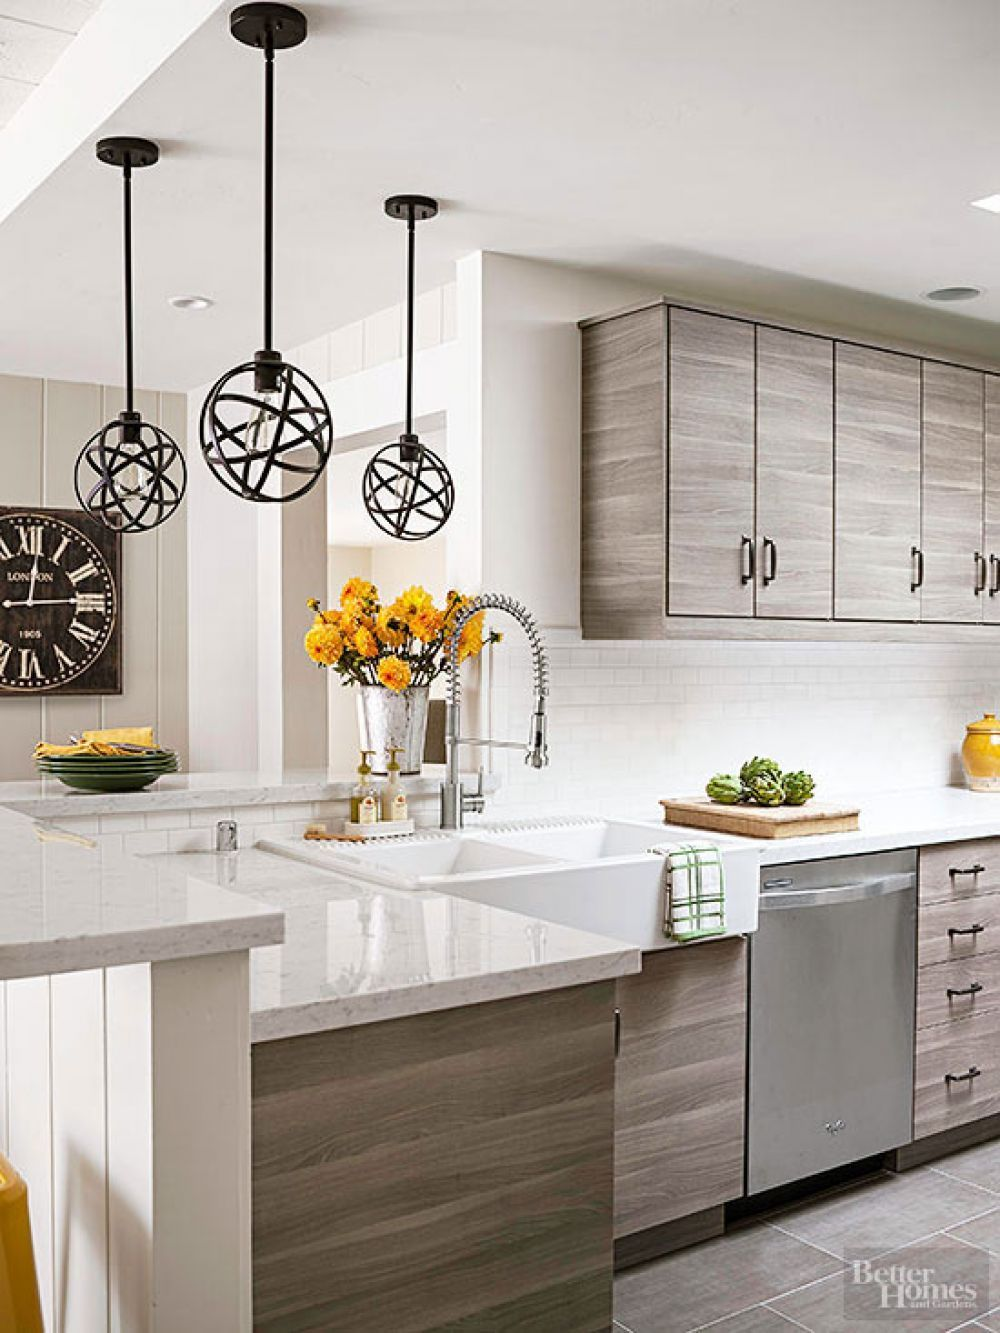 If You Are Having A Home Remodeling Project Then The Kitchen Can Be The Most Difficult Part Of The Renovation Process There Are Several Thi In 2020 Kitchen Cabinet Remodel Cheap